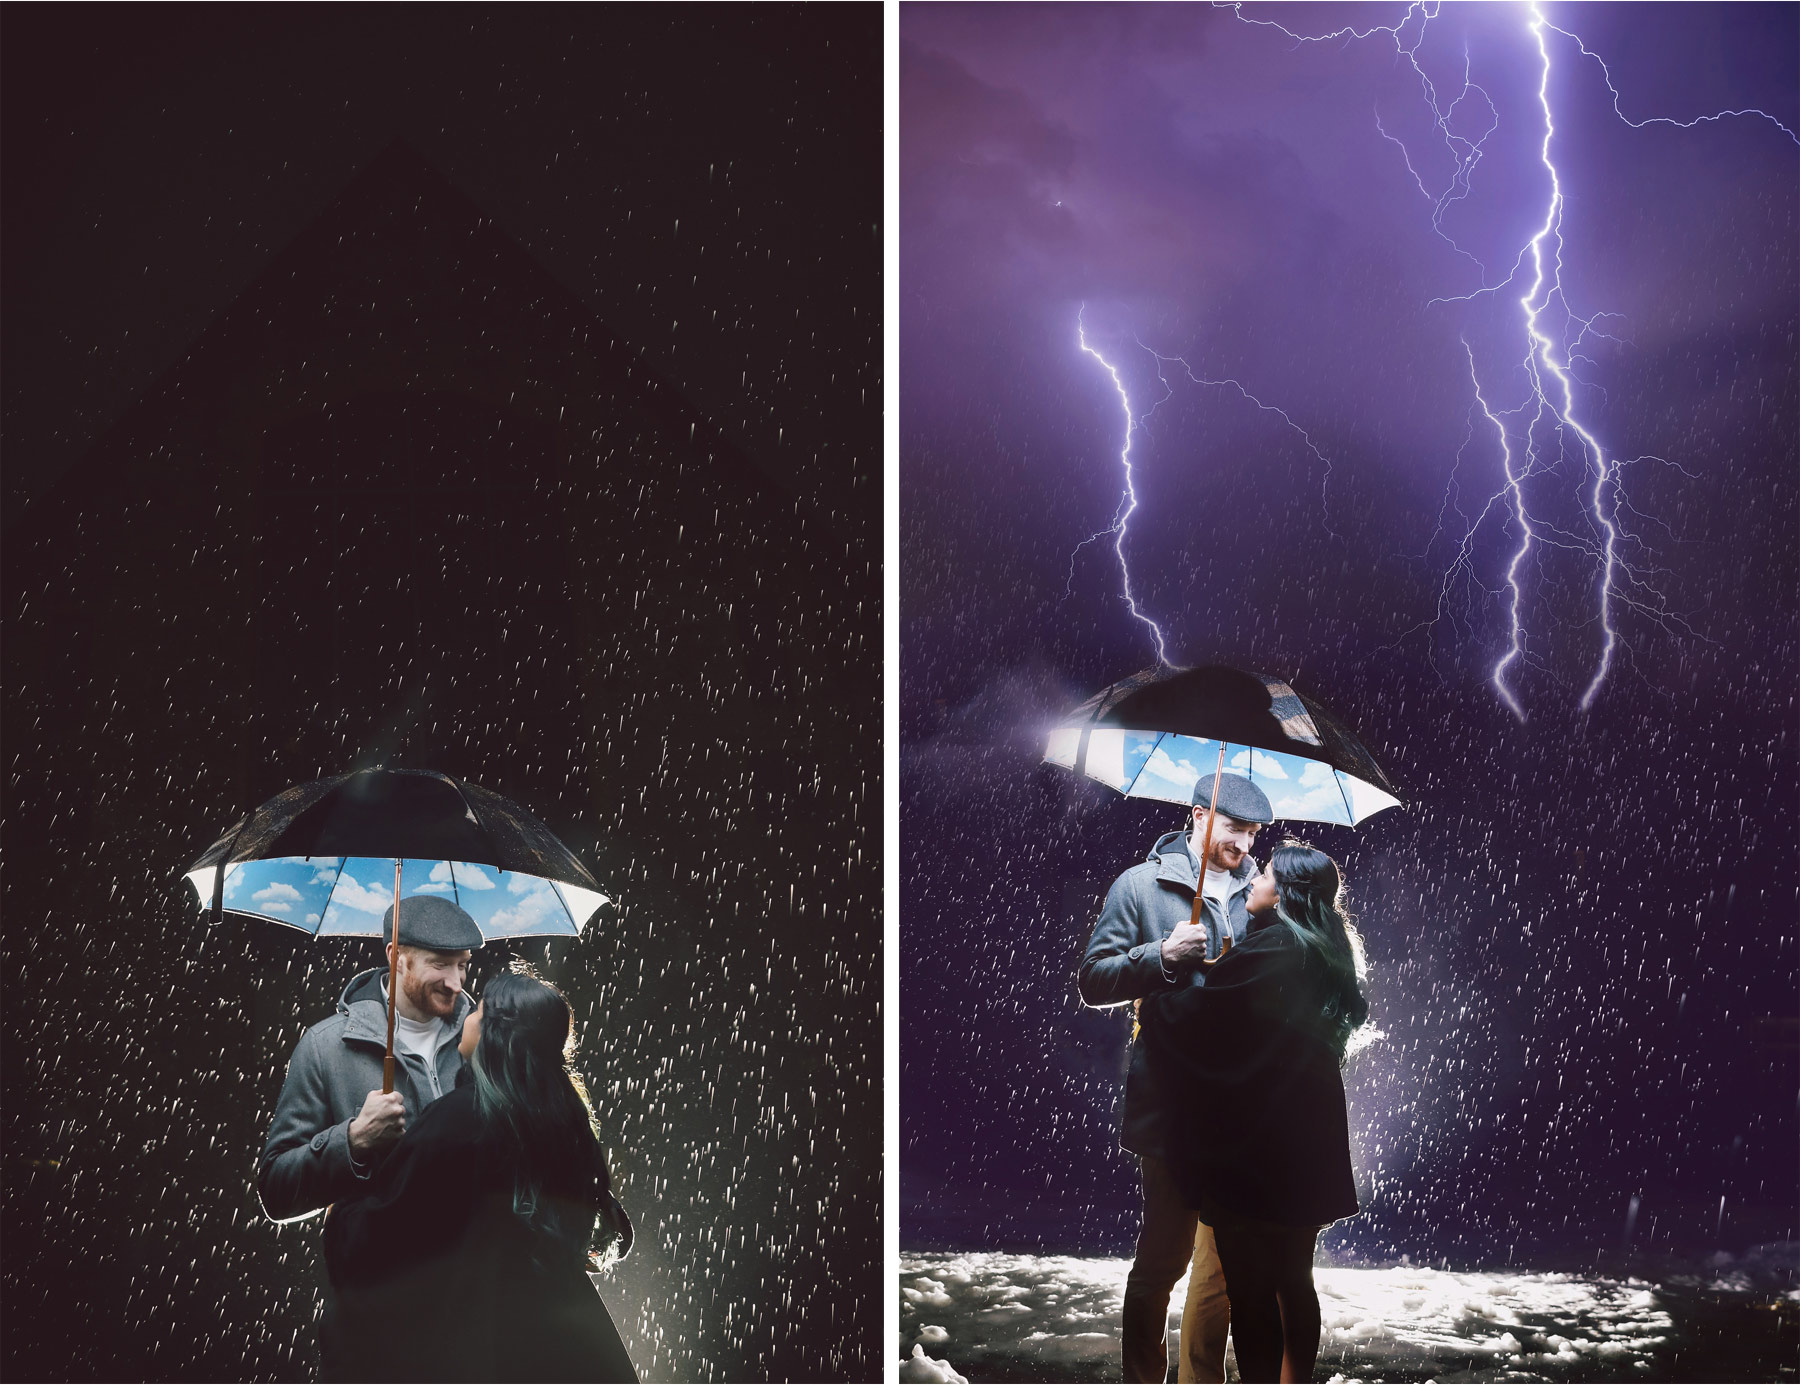 12-Harry-Potter-Themed-Engagement-Session-Minnesota-Wedding-Photography-Andrew-Vick-Night-Rain-Storm-Lightning-Elena-and-Doug.jpg